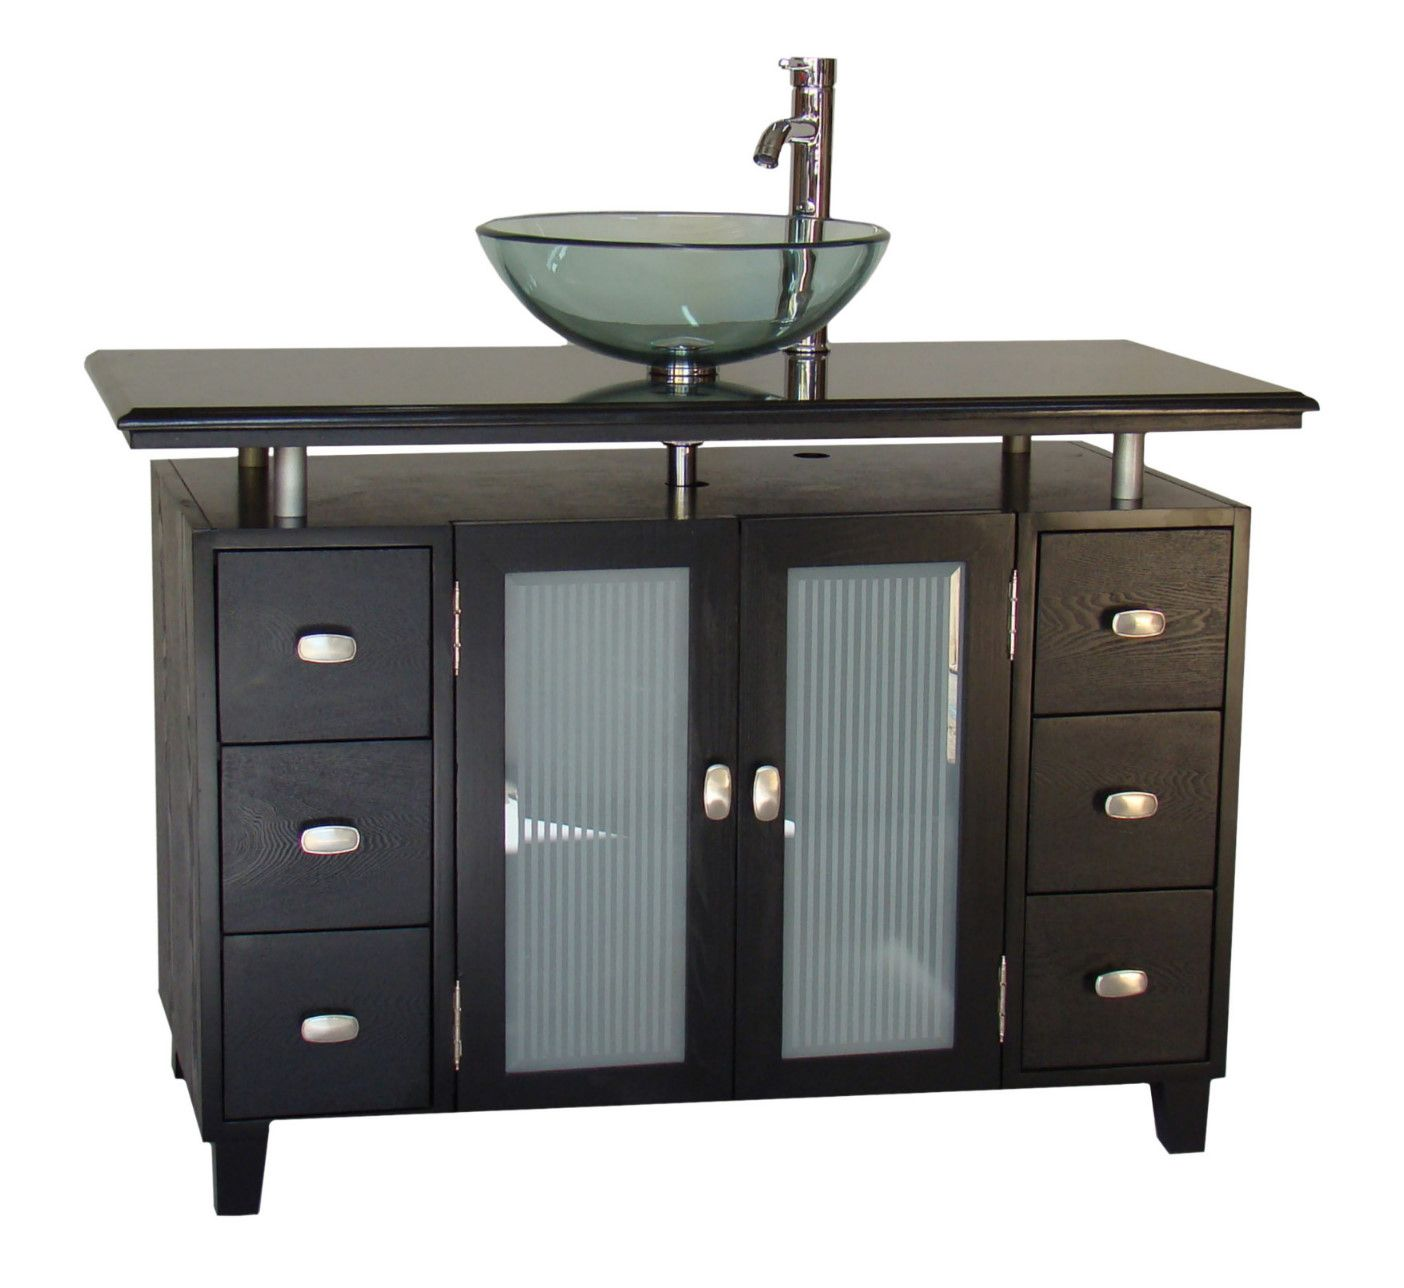 46 Inch Adelina Vessel Sink Bathroom Vanity Black Granite Top